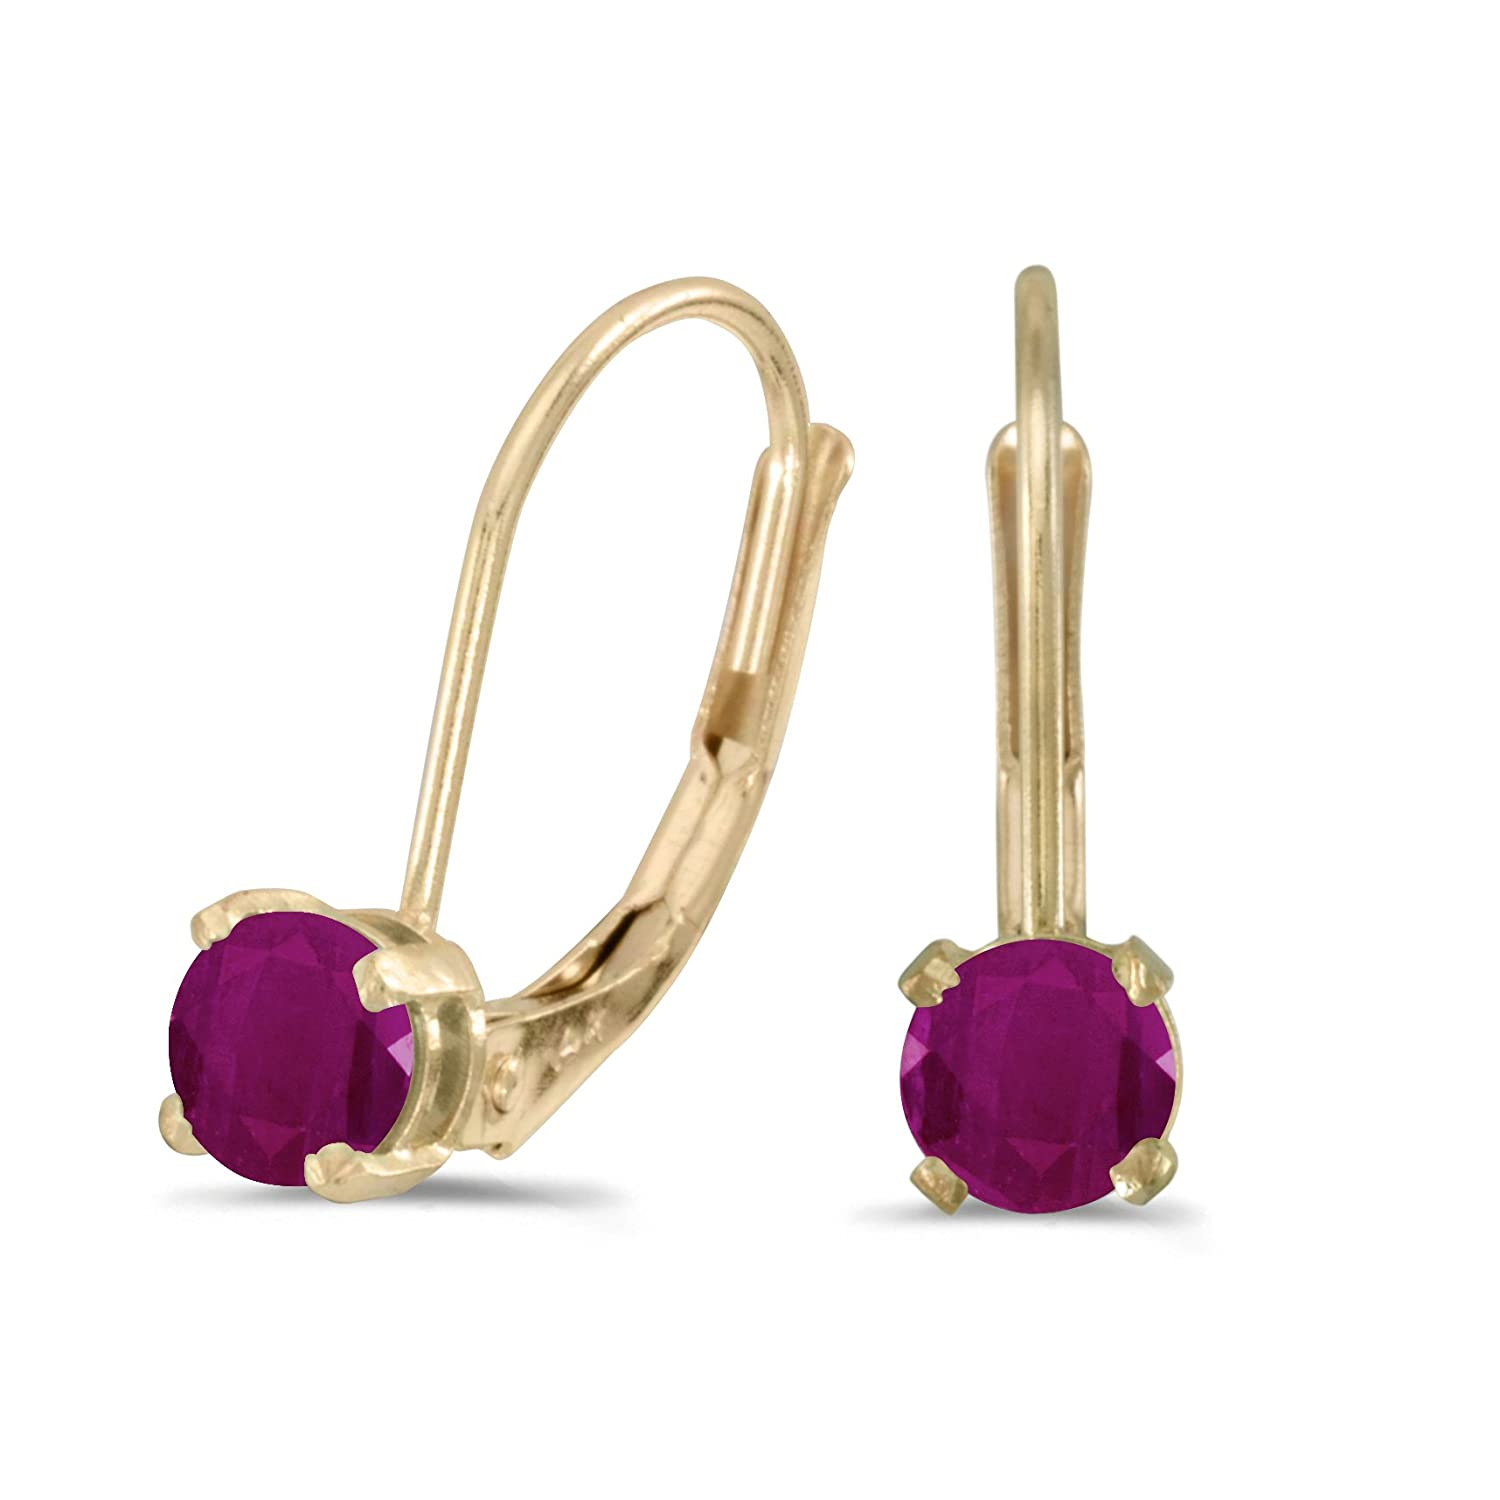 earrings online s christie christies jewels diamond hgk ruby jewellery and